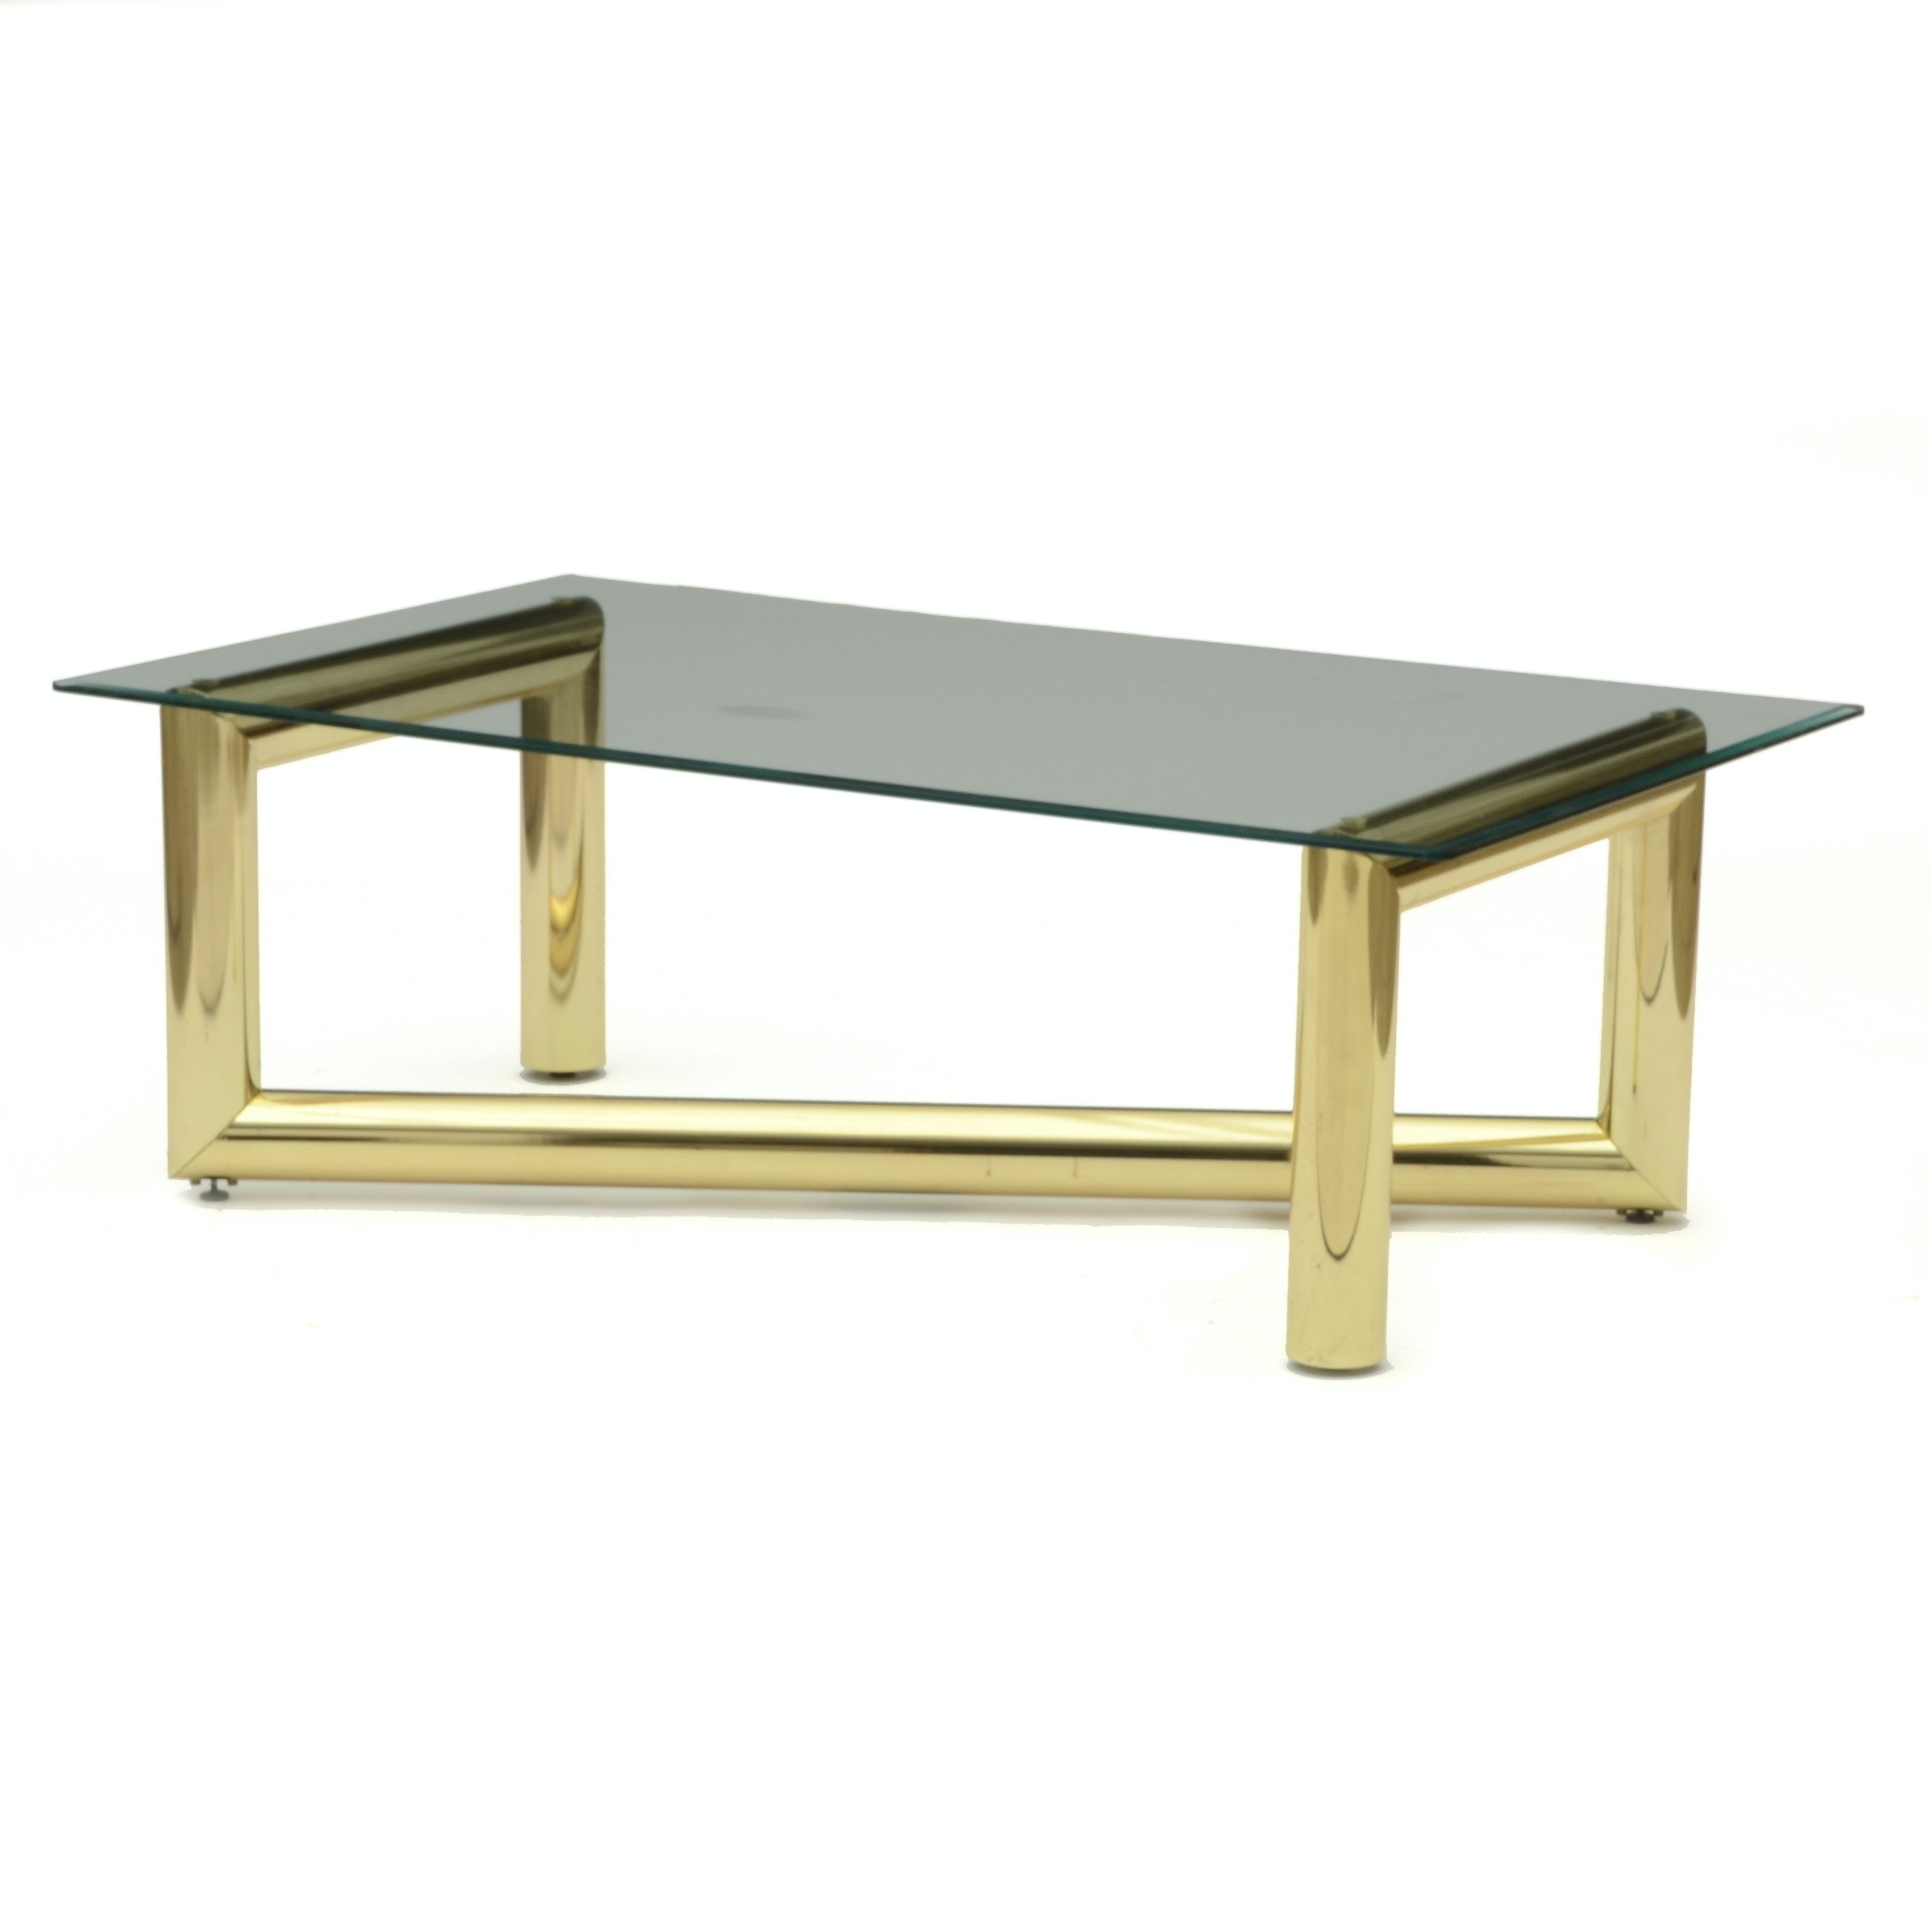 karl springer brass and glass coffee table : ebth